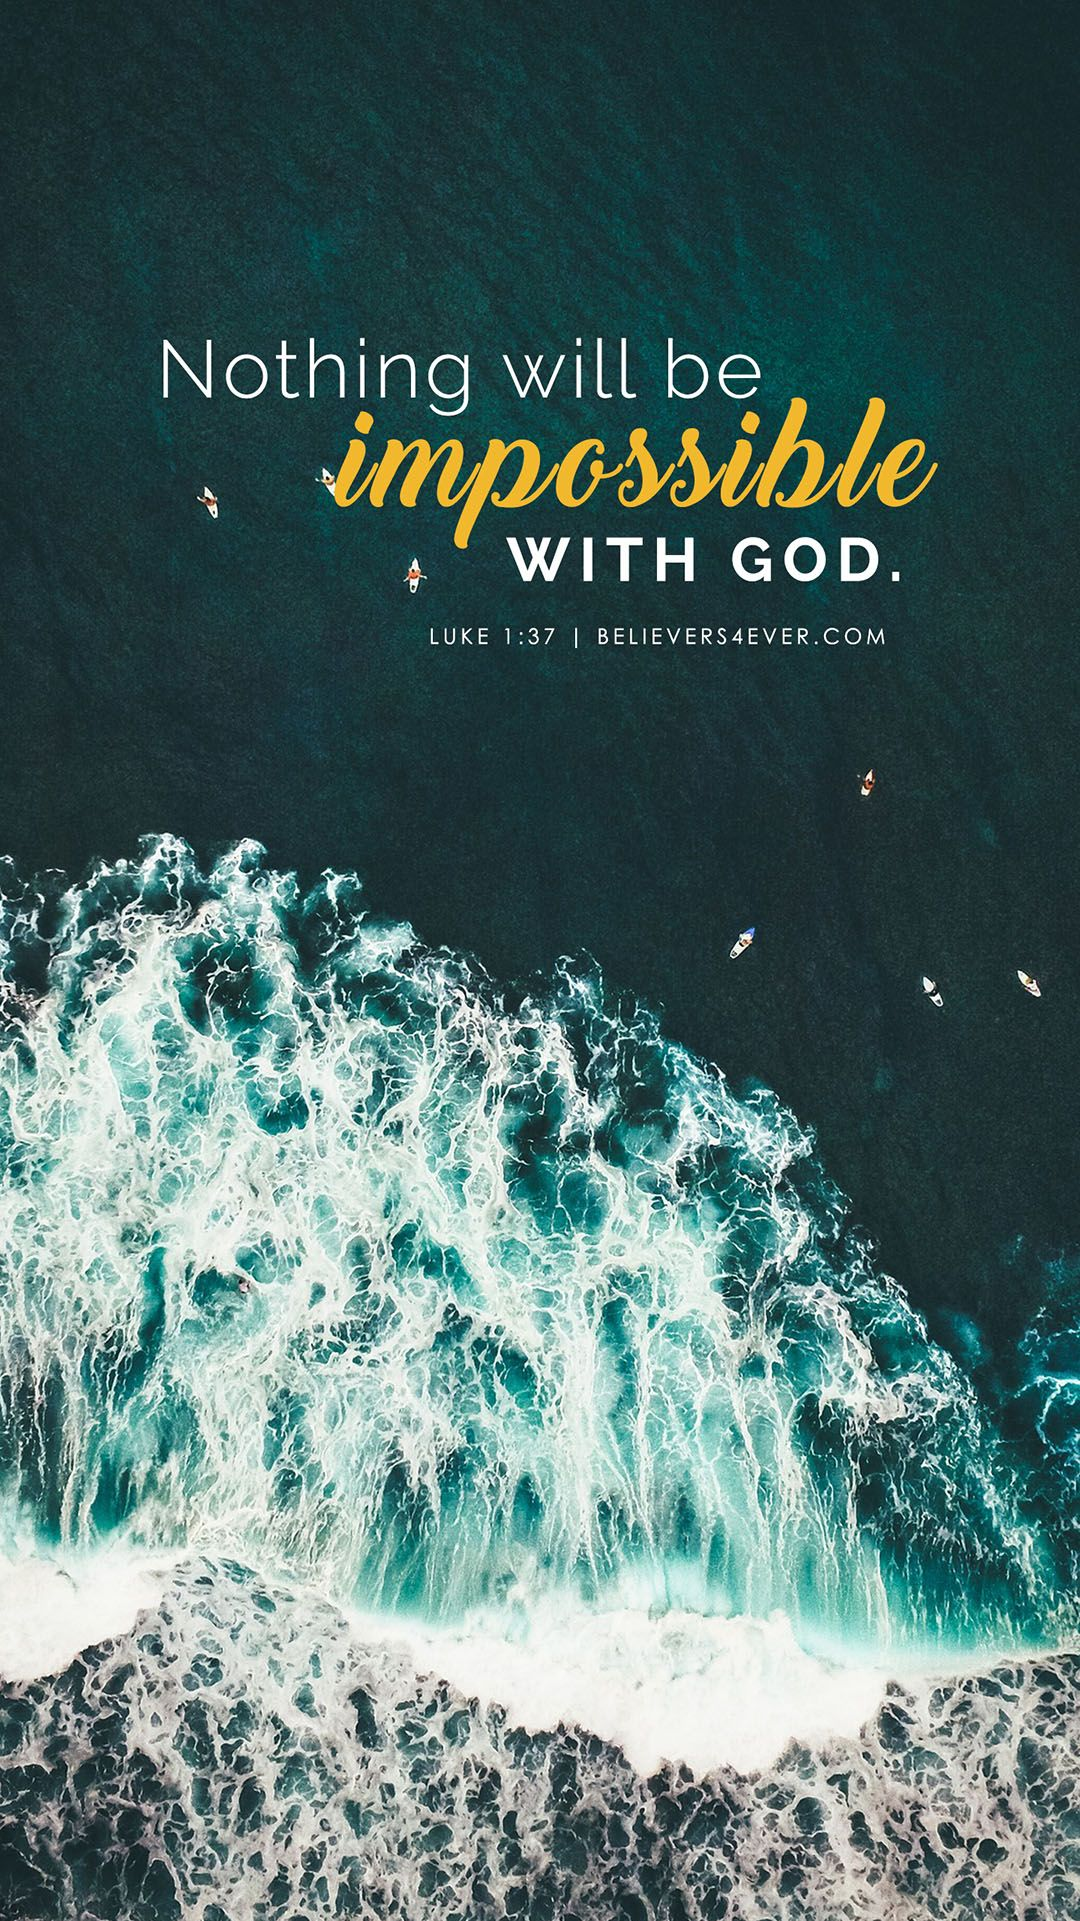 Hd Christian Wallpaper Nothing Will Be Impossible With God Luke 1 37 Free Mobile Wallpap Bible Verse Wallpaper Iphone Wallpaper Bible Scripture Wallpaper